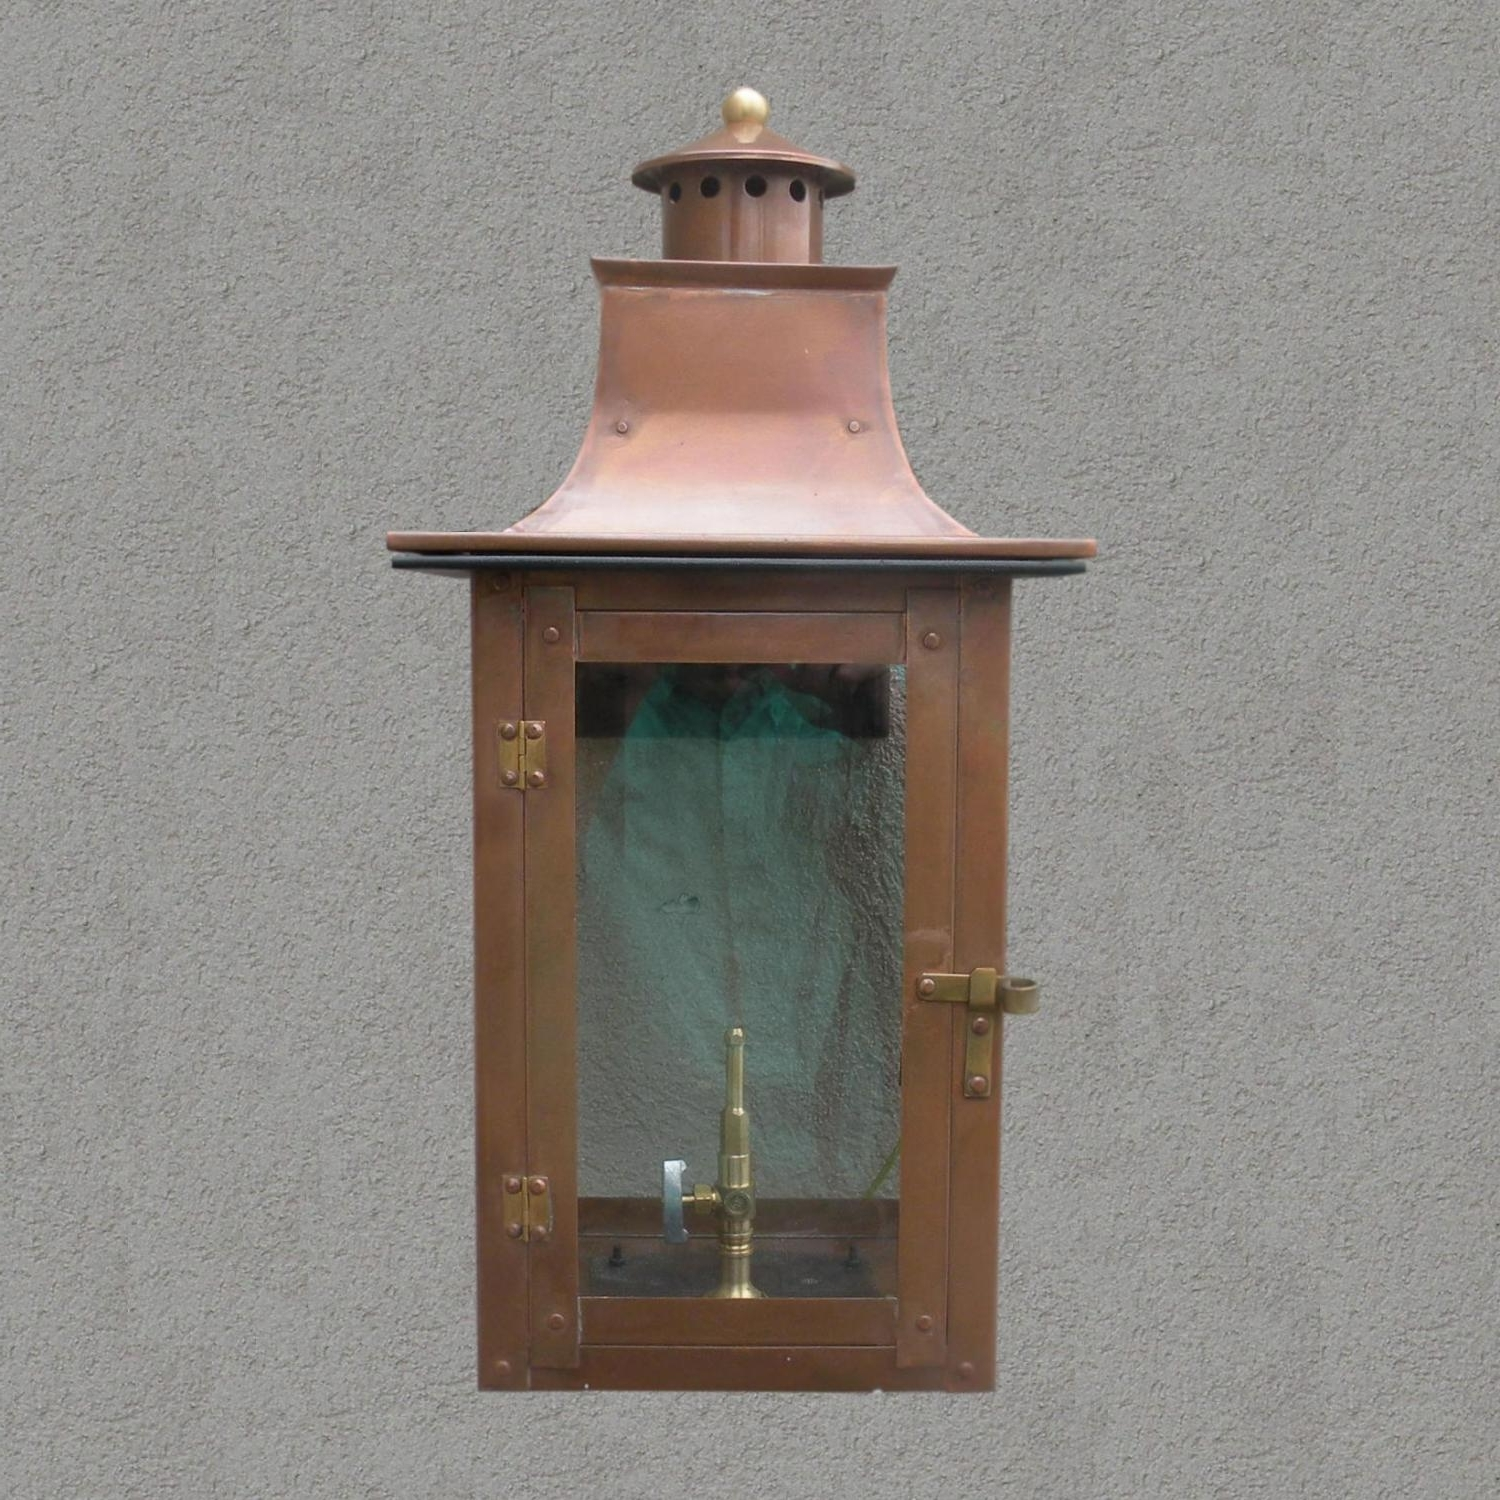 Regency Gl21 Faye Rue Small Natural Gas Light With Open Flame Burner With Regard To Latest Outdoor Wall Mount Gas Lights (View 17 of 20)